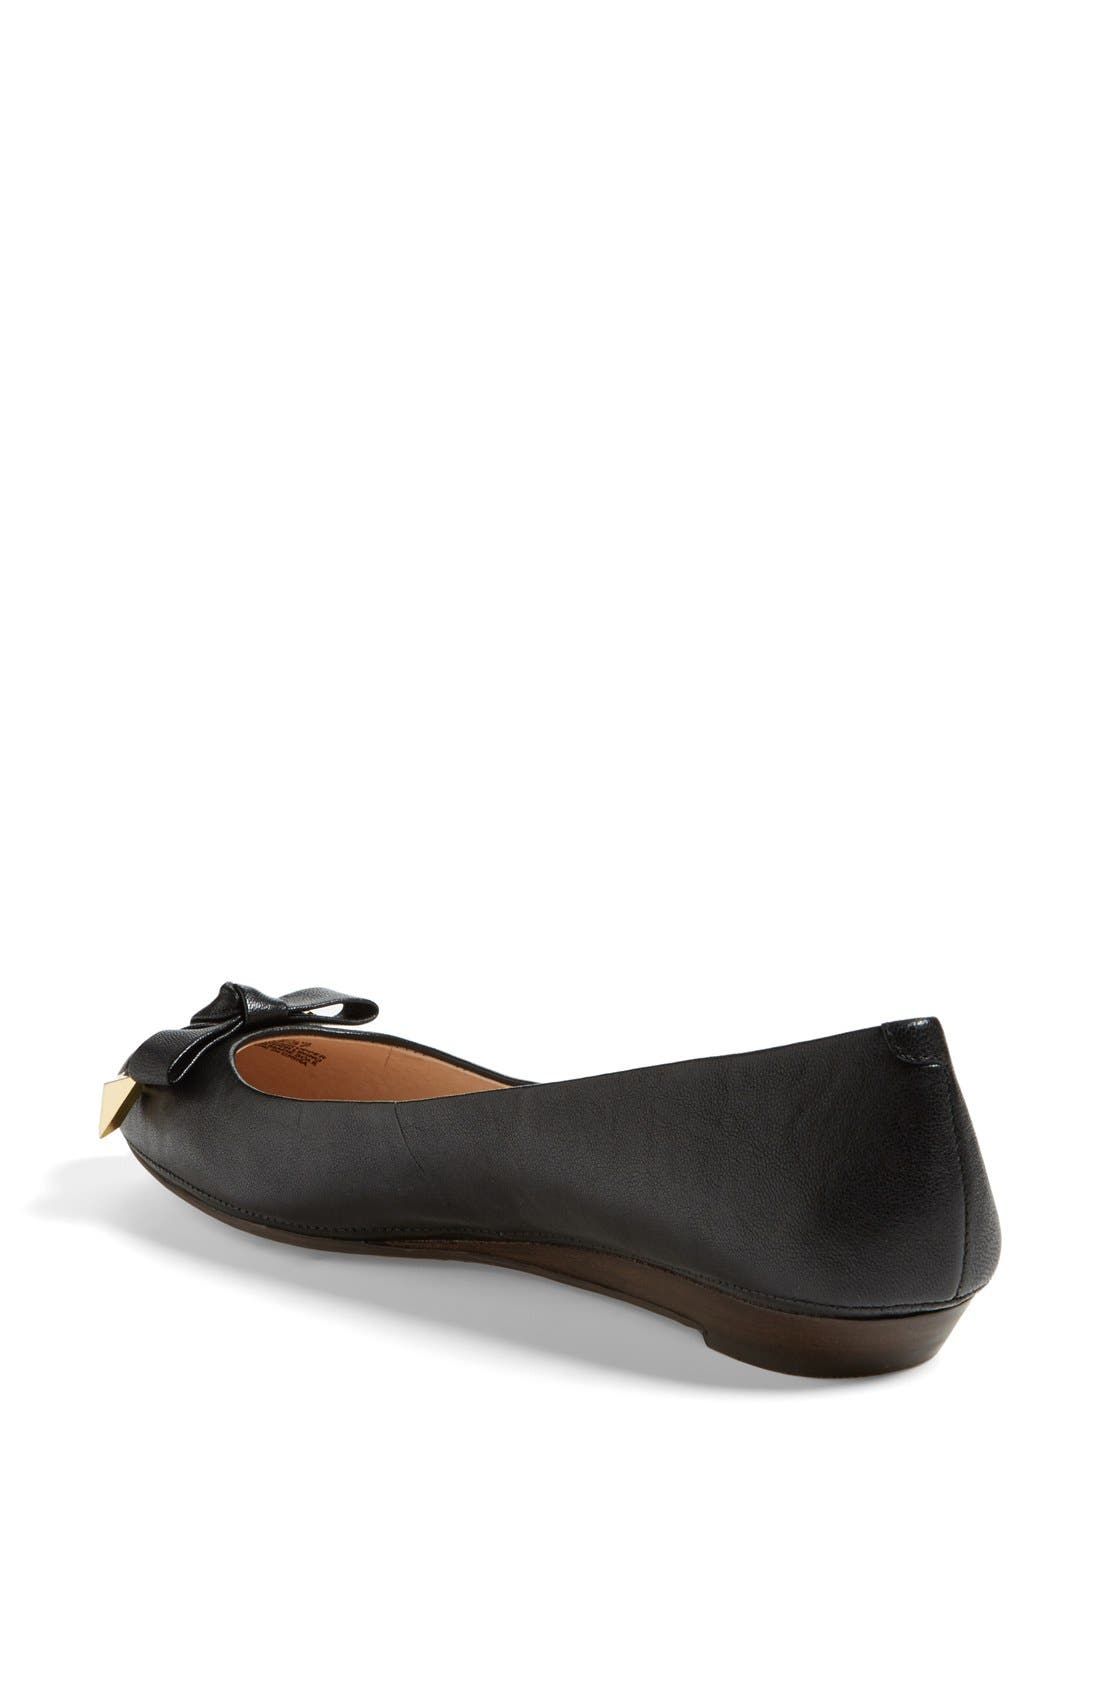 Alternate Image 2  - Louise et Cie 'Azalya' Mini Wedge Flat (Women)